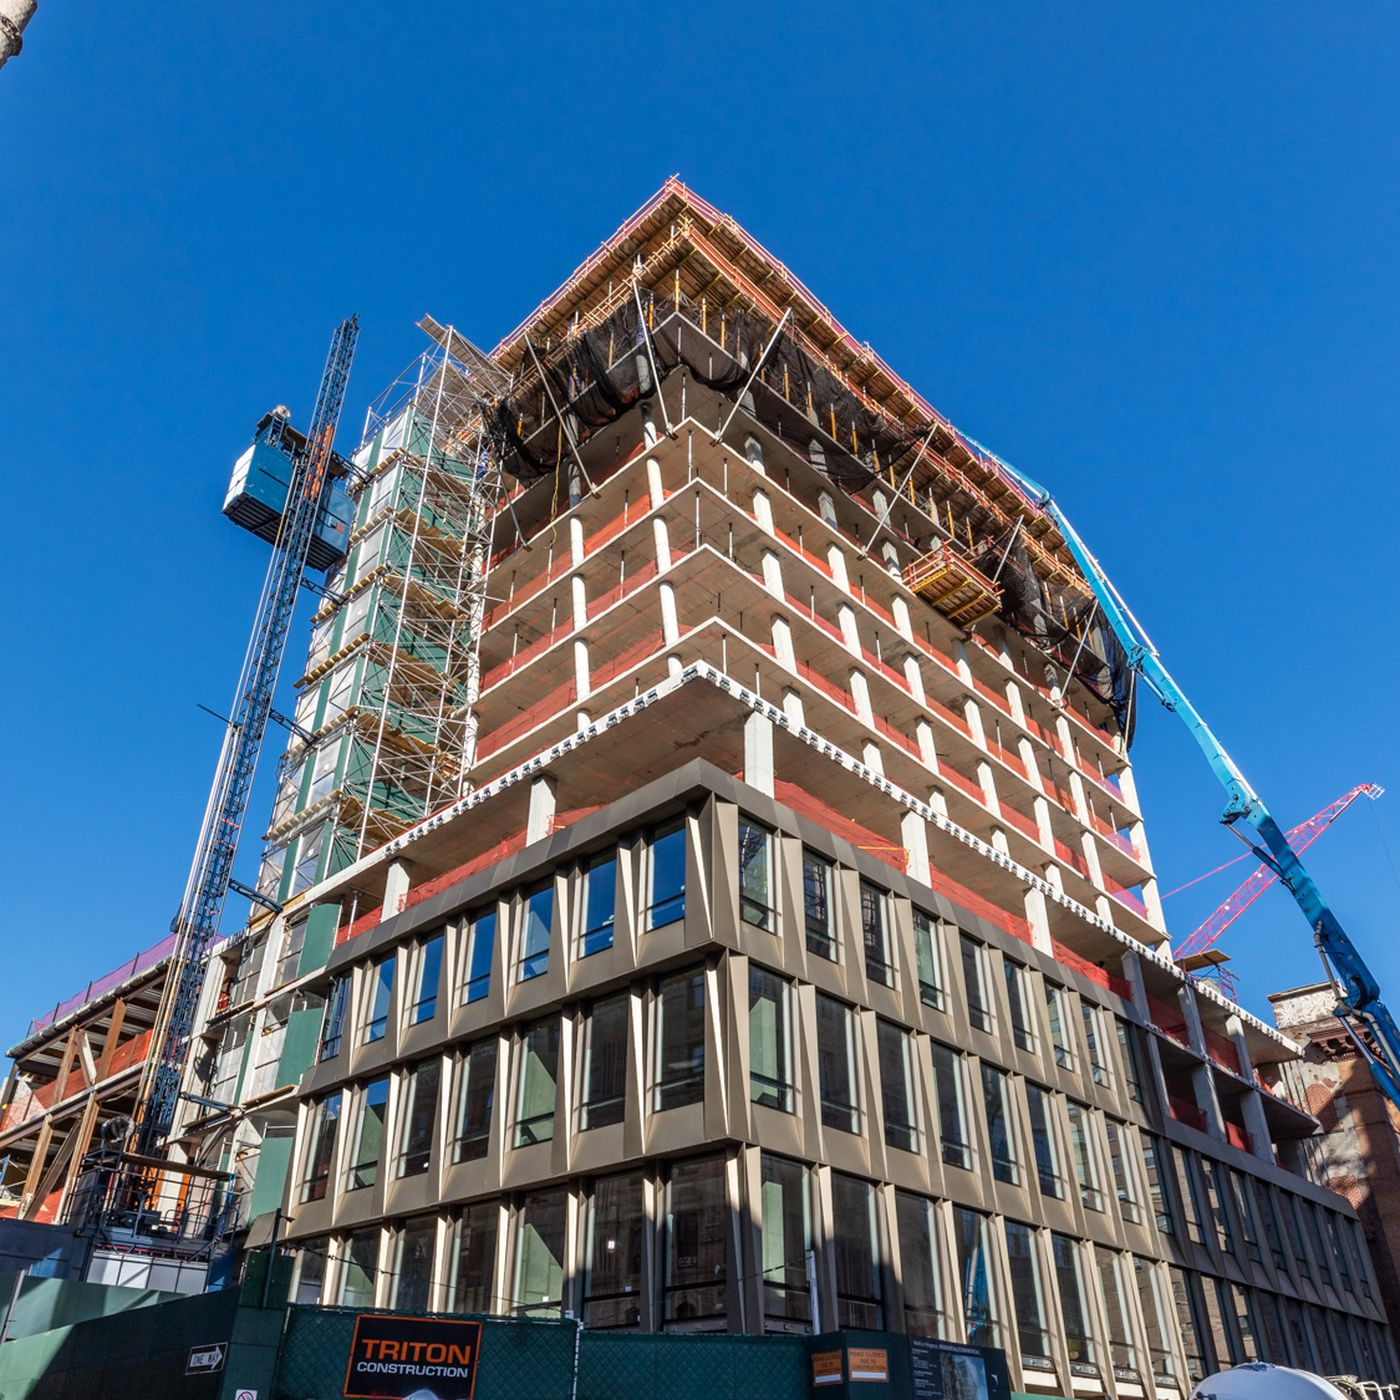 Essex Crossing S 242 Broome Street Gives Shape To A New Lower East Side Enclave Curbed Ny